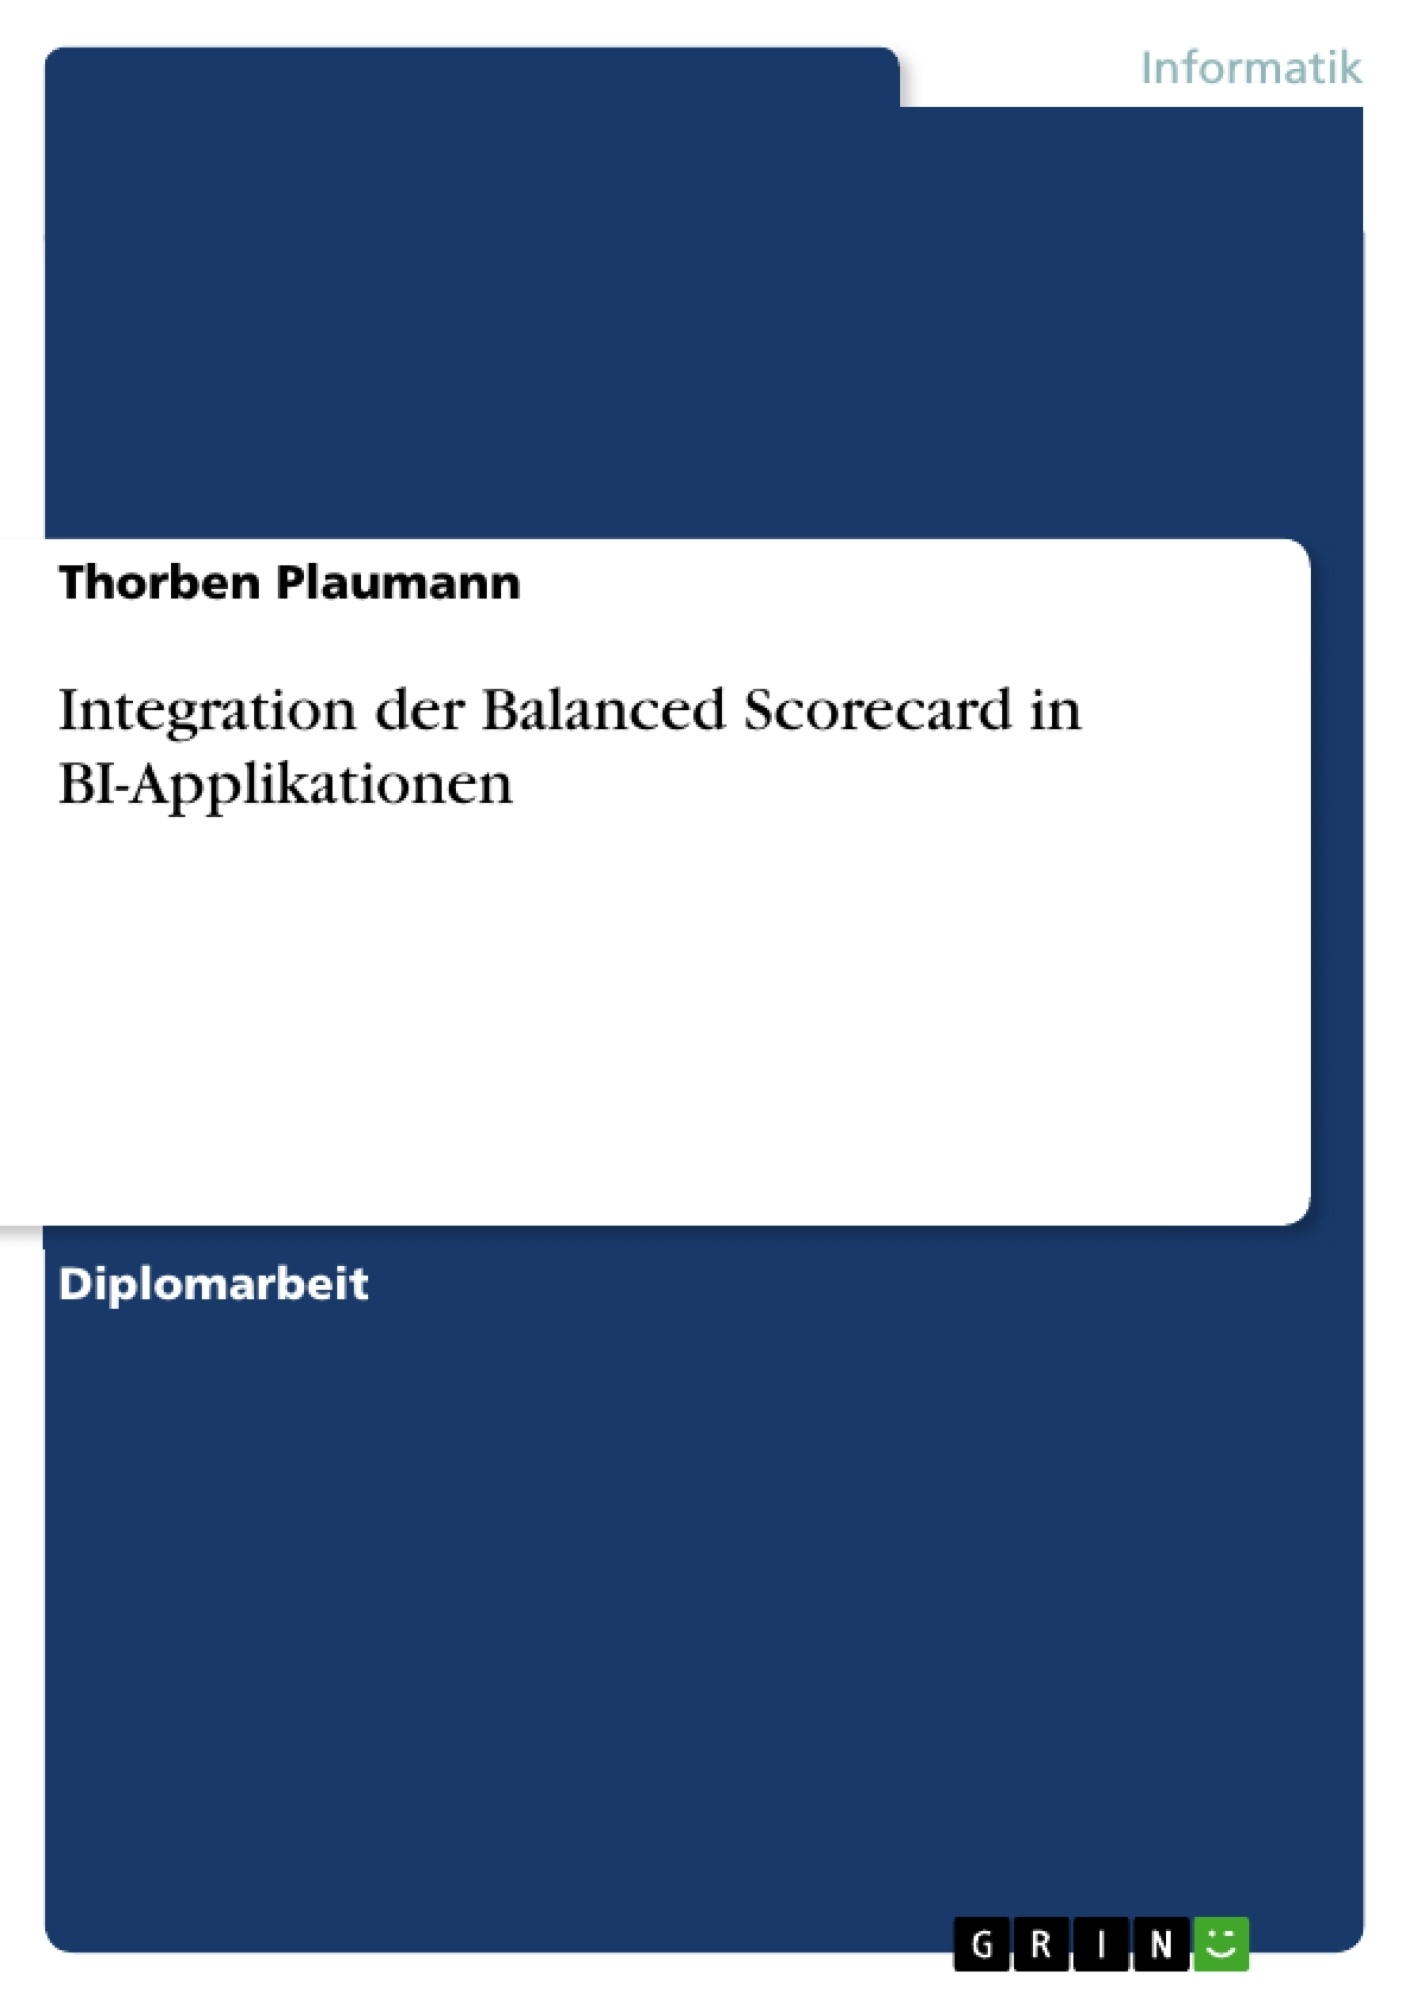 Titel: Integration der Balanced Scorecard in BI-Applikationen